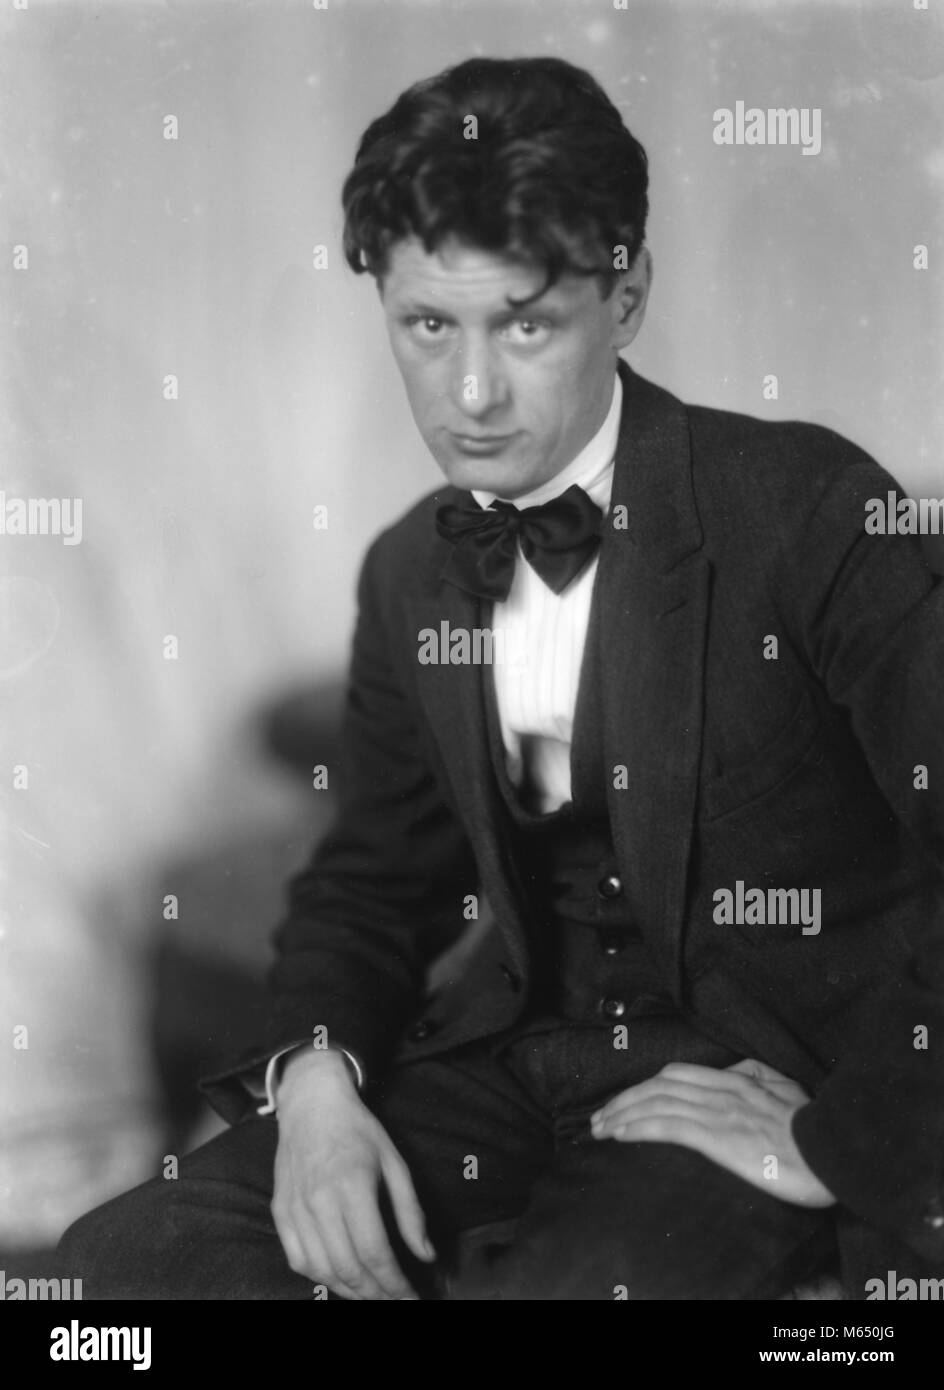 Black and white portrait photograph of German-American, Expressionist painter Josef Scharl, shown in three-quarter - Stock Image